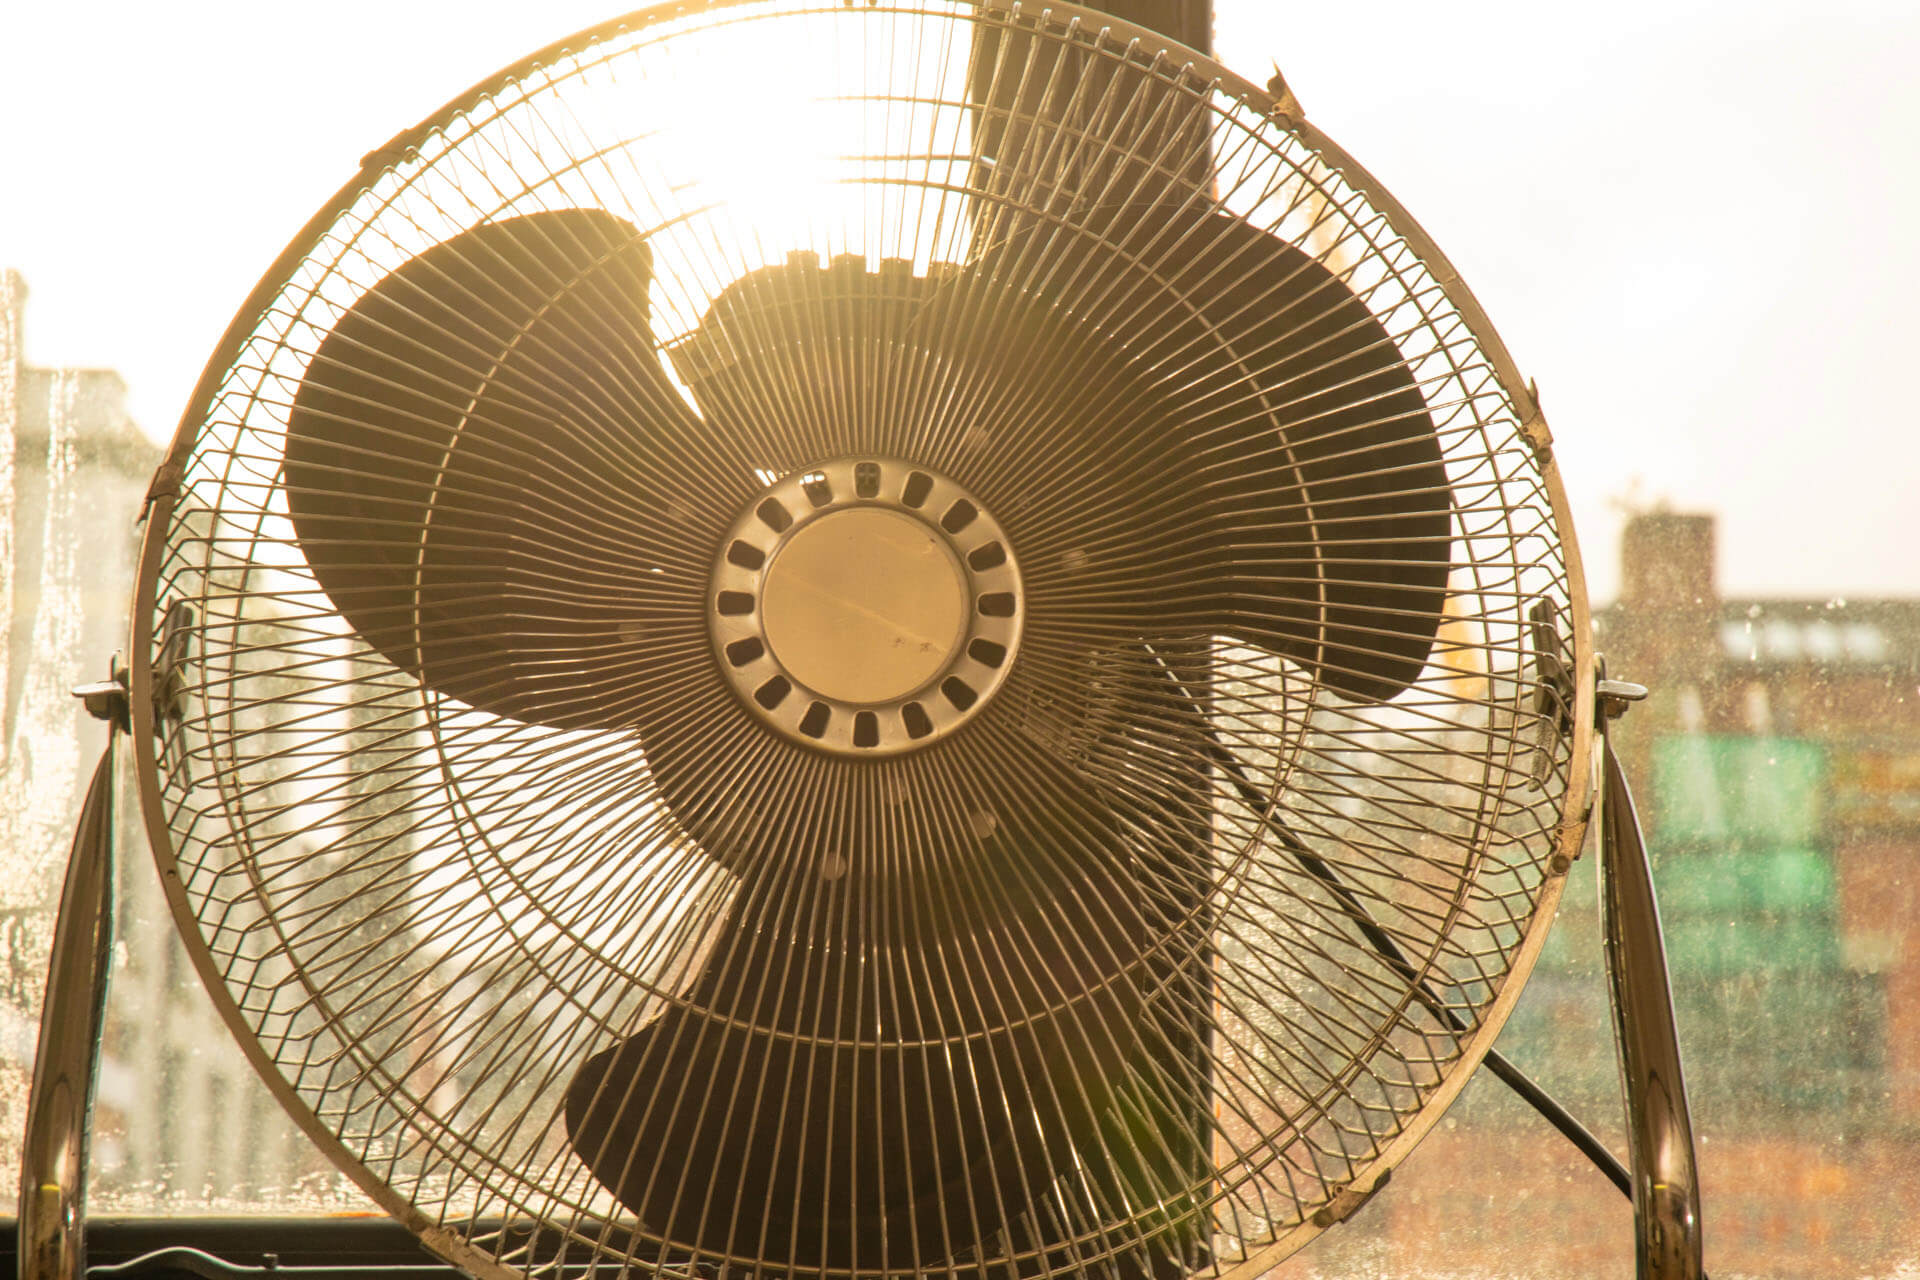 A large fan for studio photoshoots